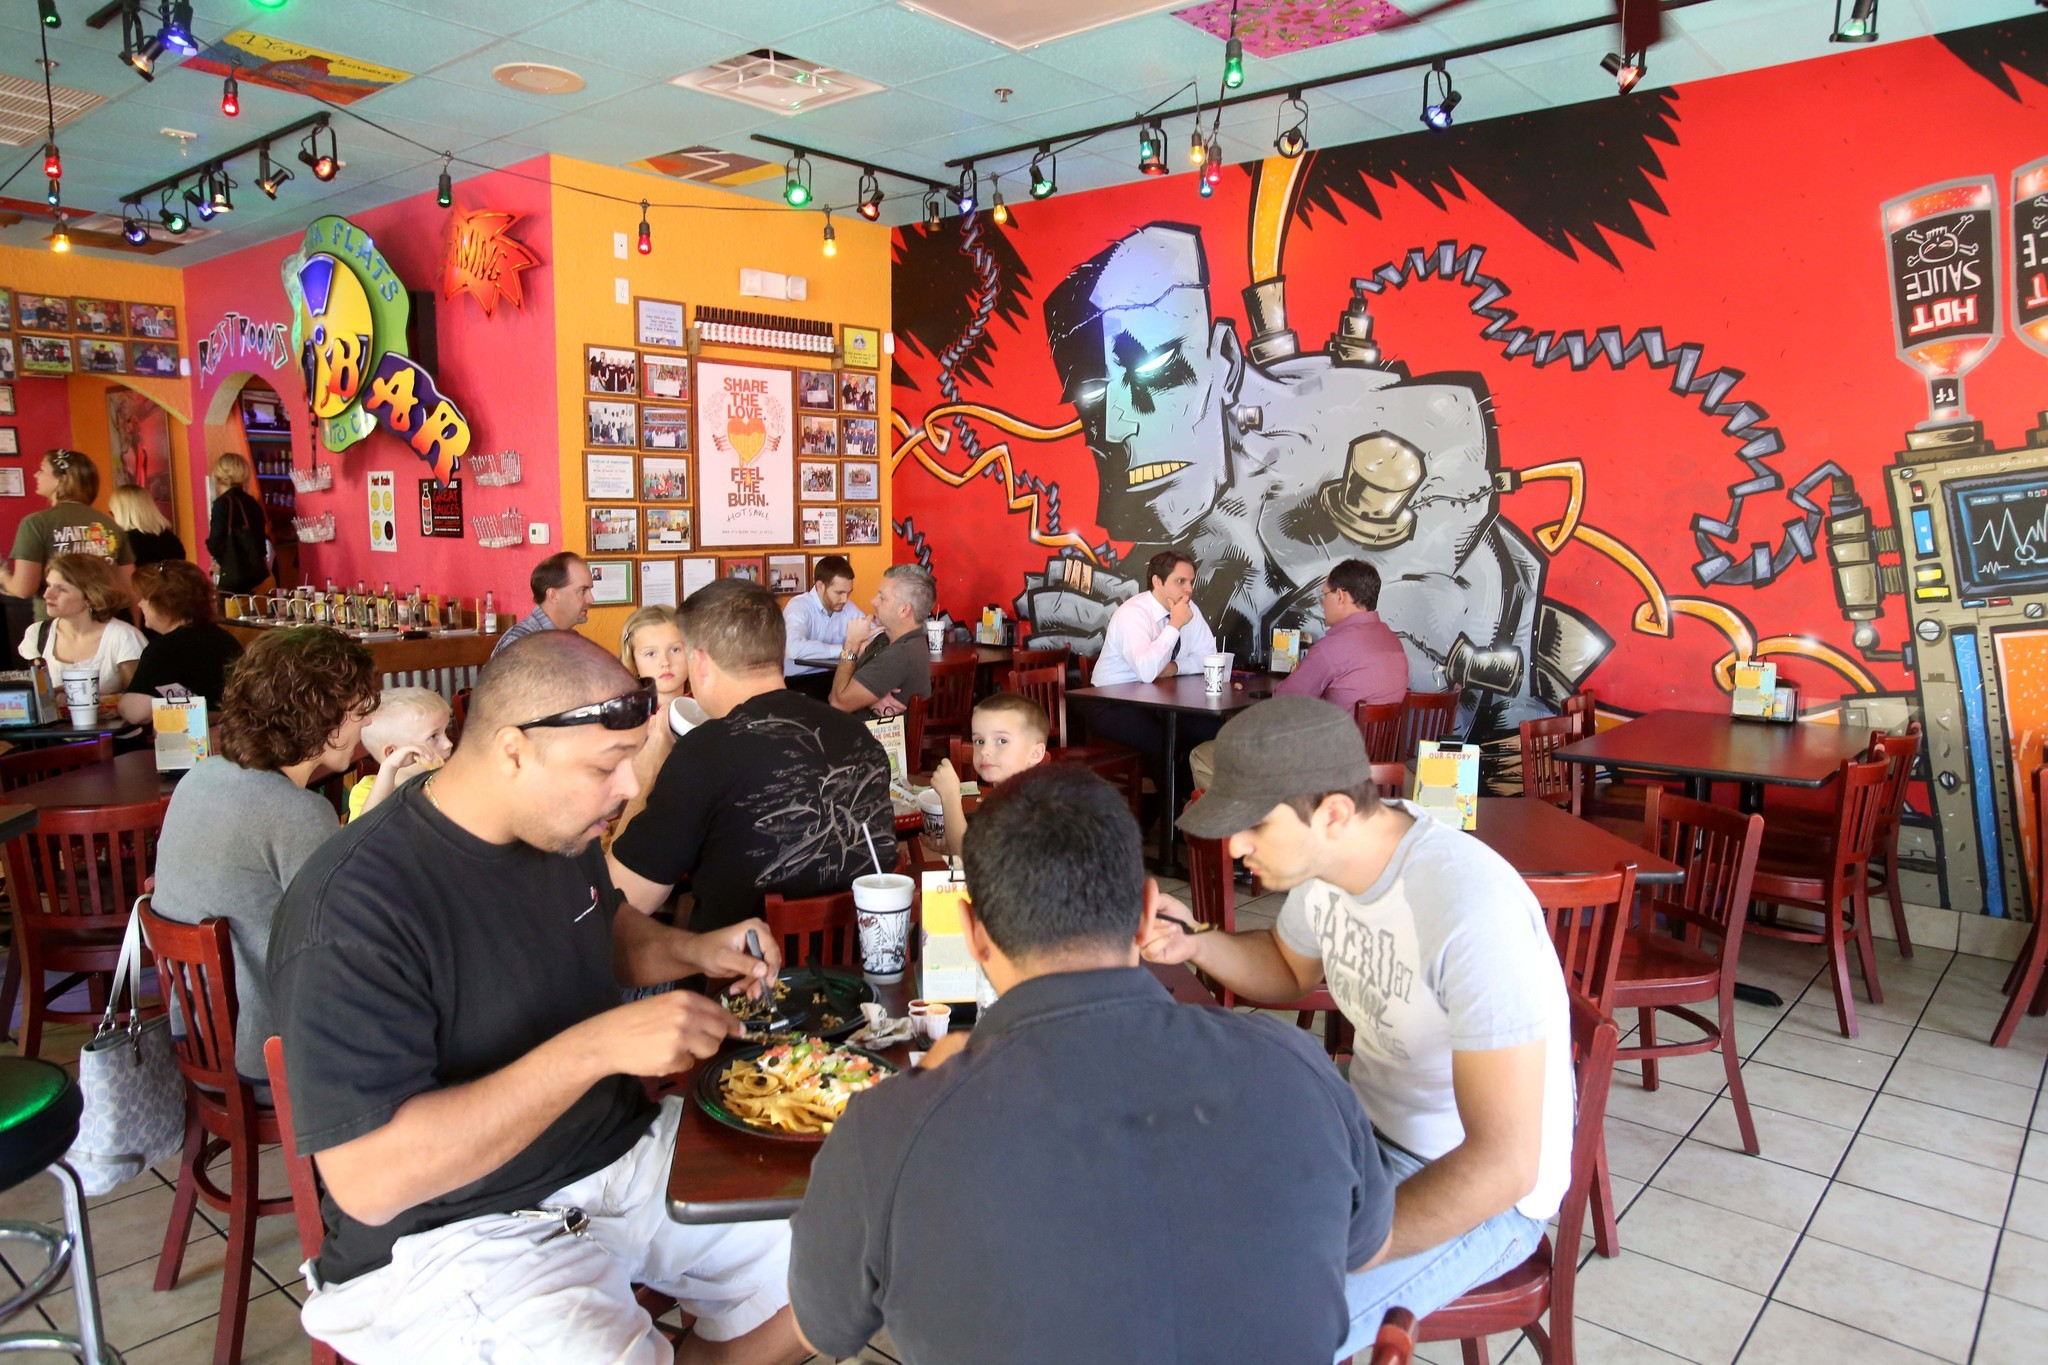 Tijuana Flats Grows In 2014 With Nine New Restaurants Orlando Sentinel